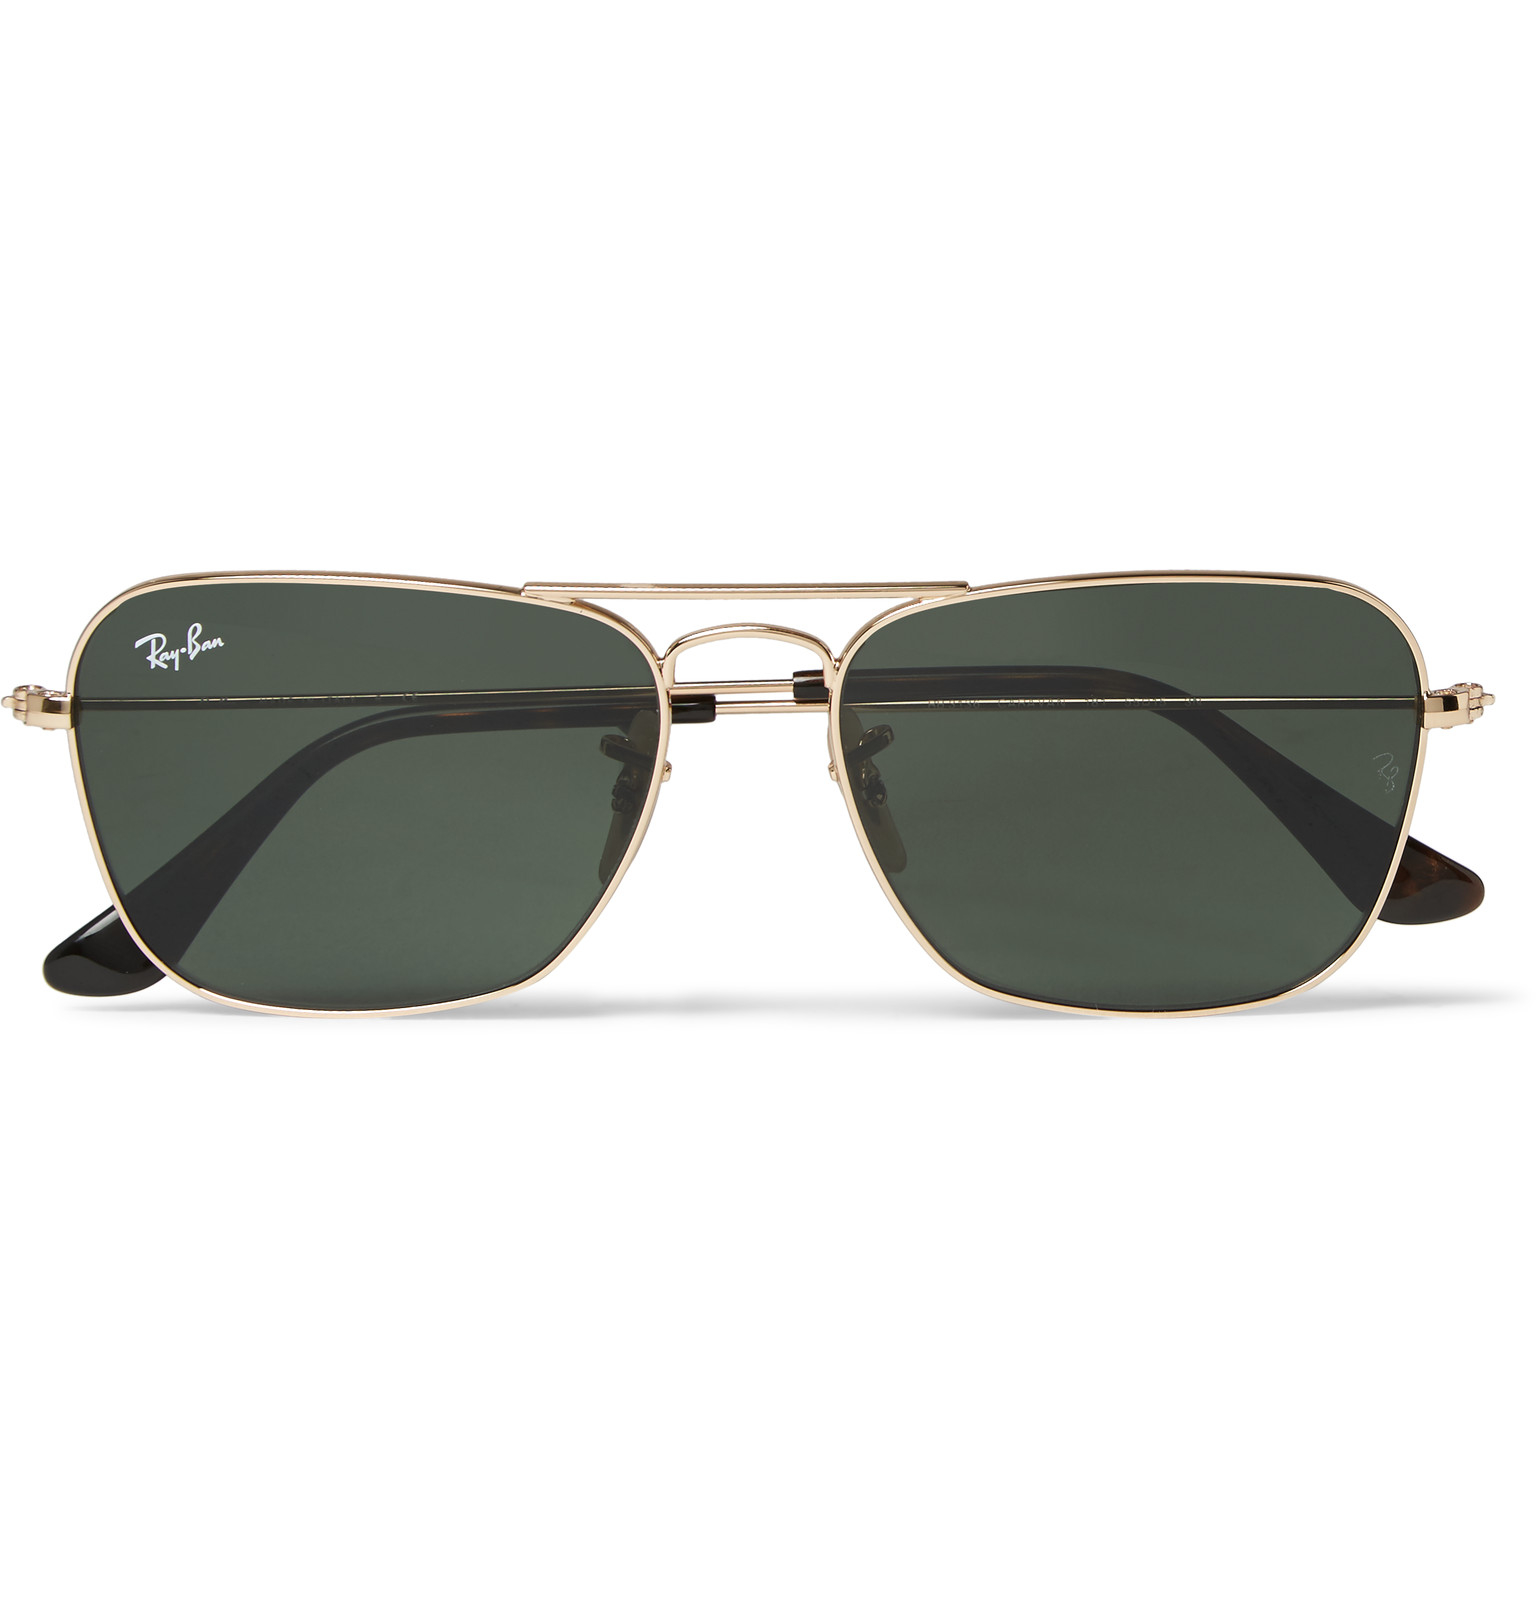 1b5e271be0a Ray-Ban Square-frame Gold-tone Sunglasses in Metallic for Men - Lyst